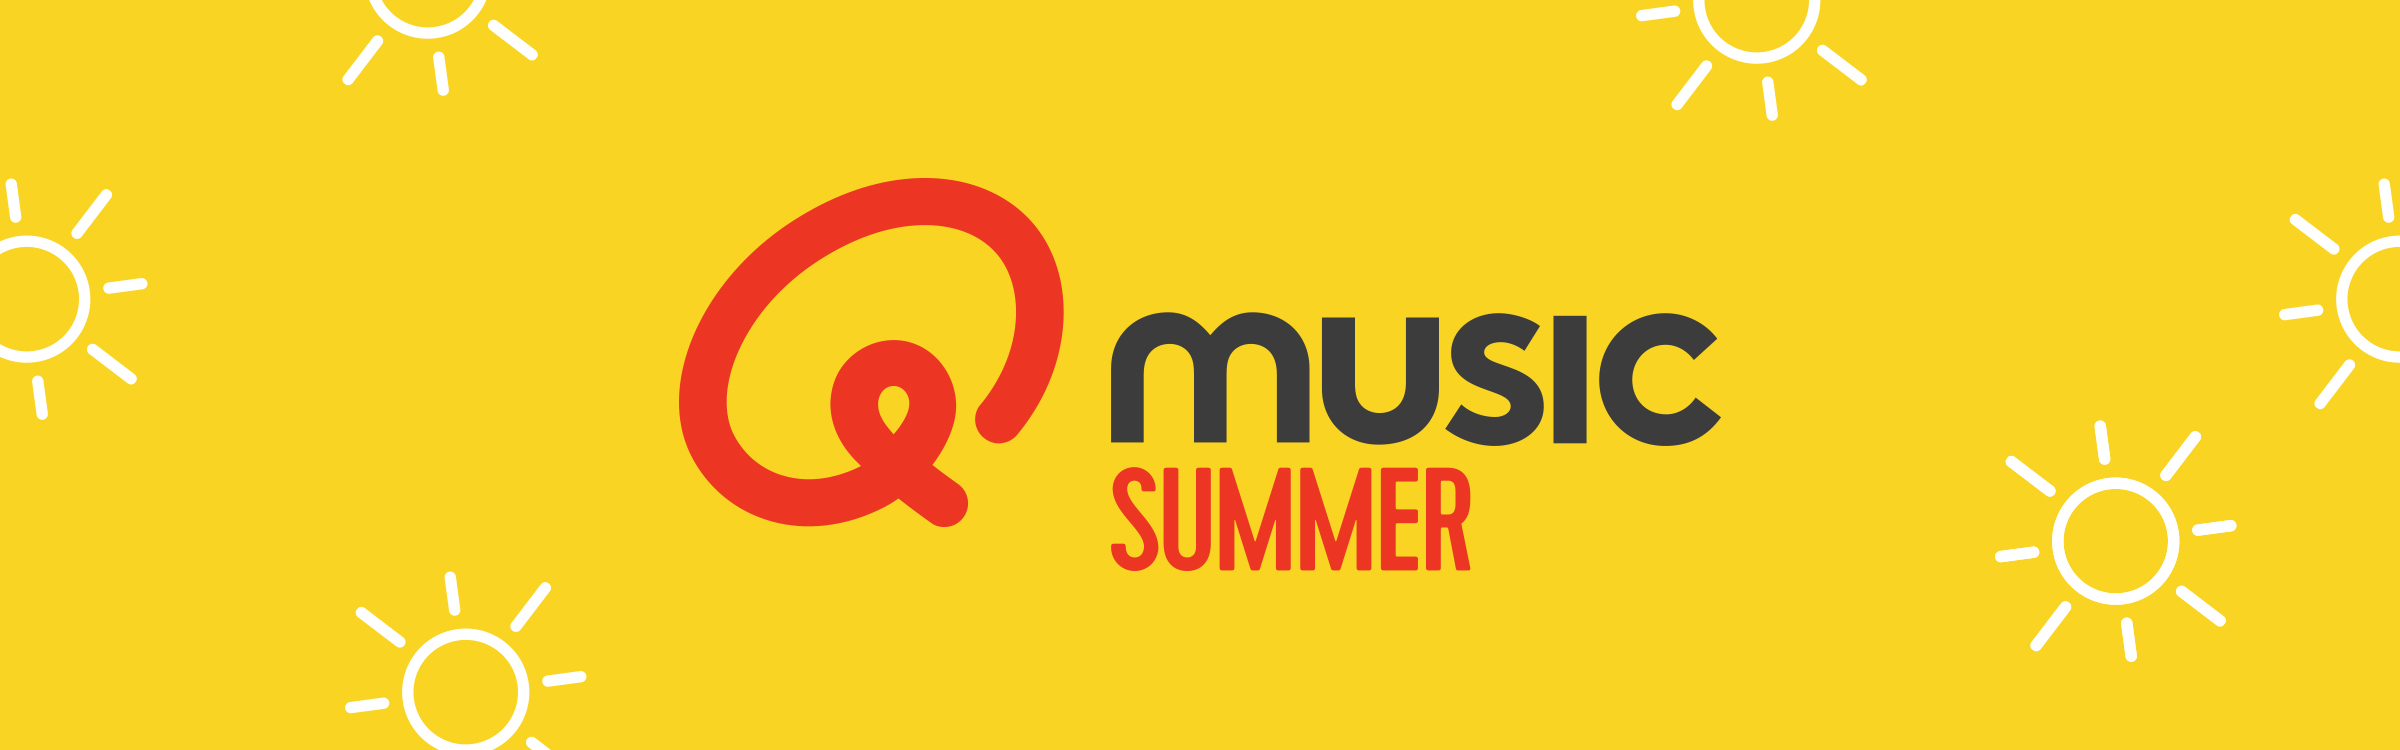 Qmusic actionheader summer